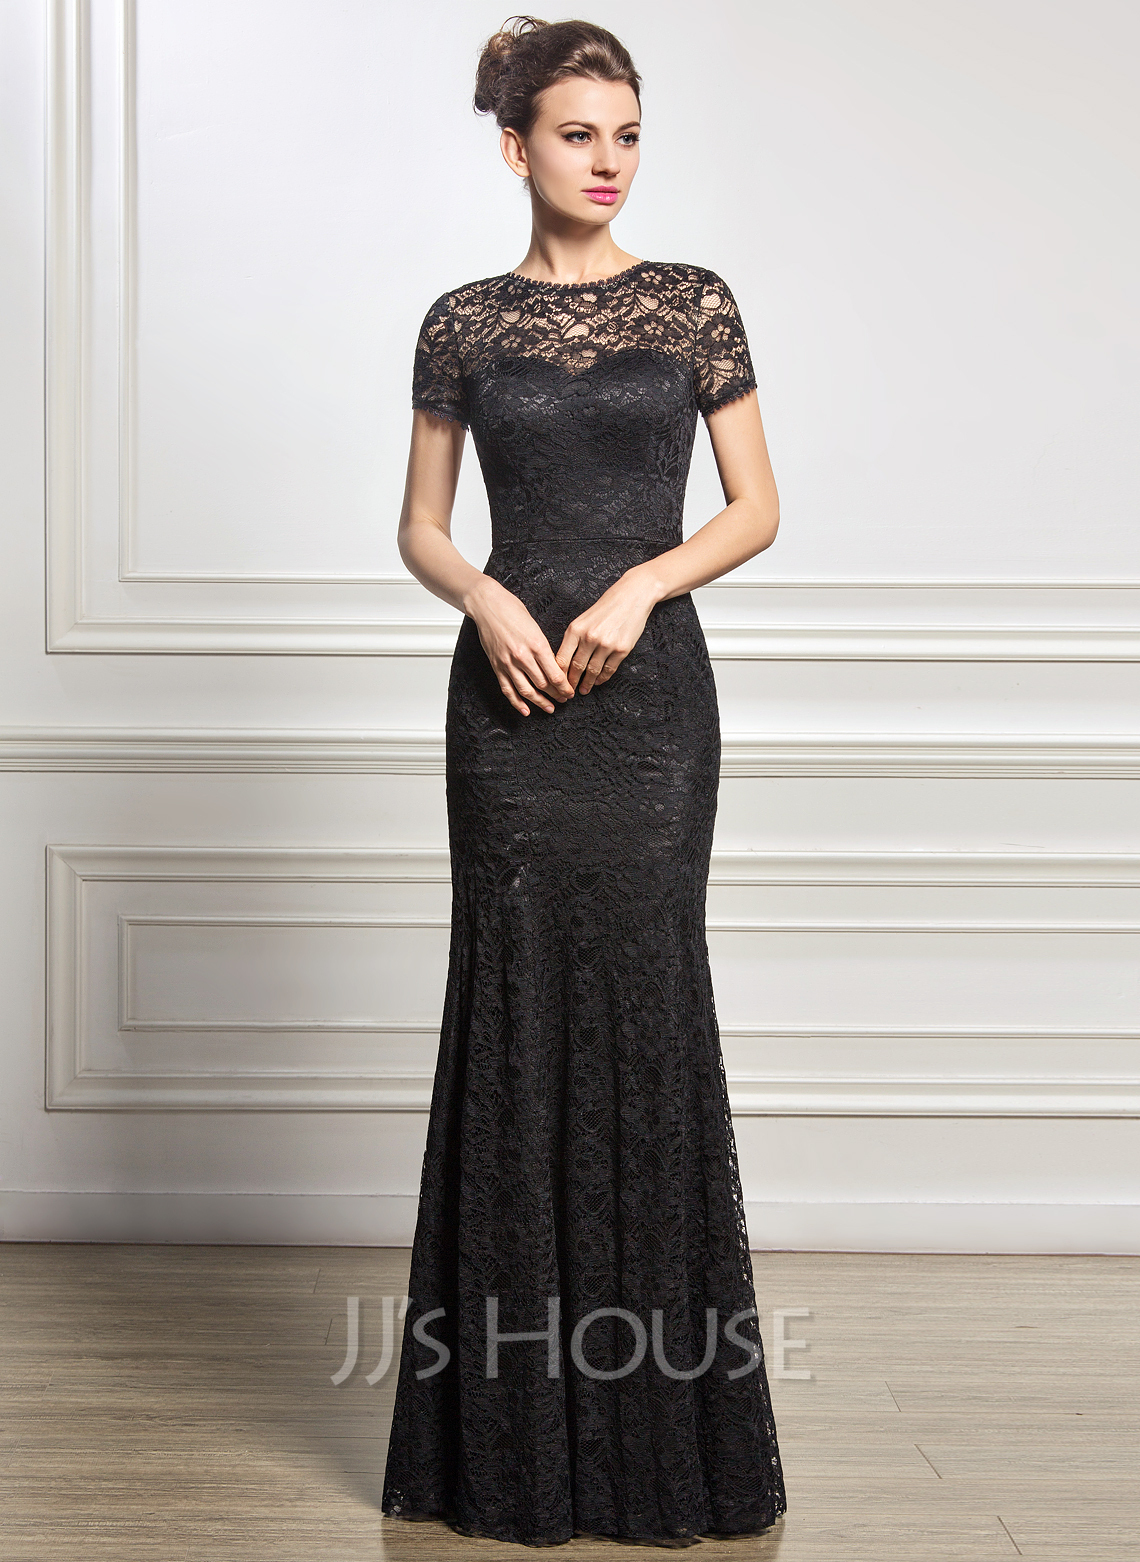 5ee2f3f9f8831 Trumpet Mermaid Scoop Neck Floor-Length Lace Mother of the Bride Dress.  Loading zoom